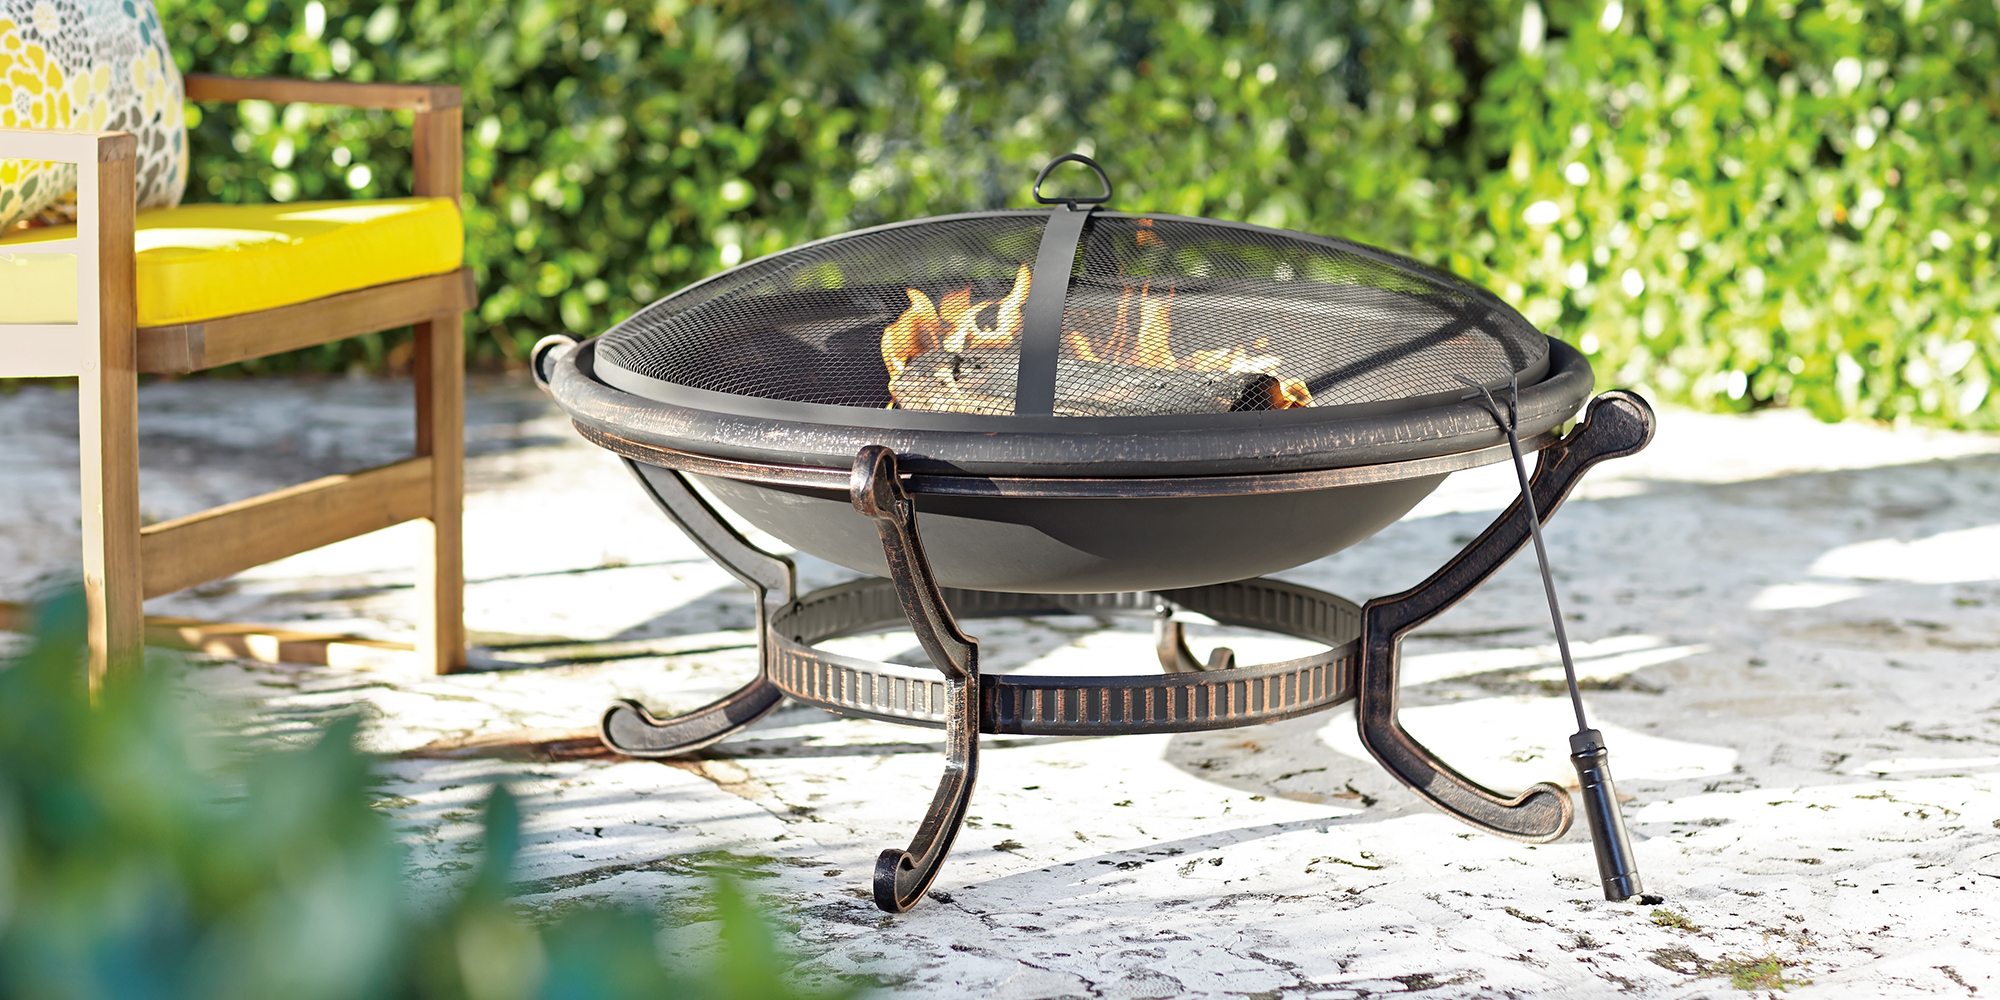 15 Best Outdoor Fire Pits for 2018 - Wood Burning and ... on Outdoor Fireplace Pit id=88406